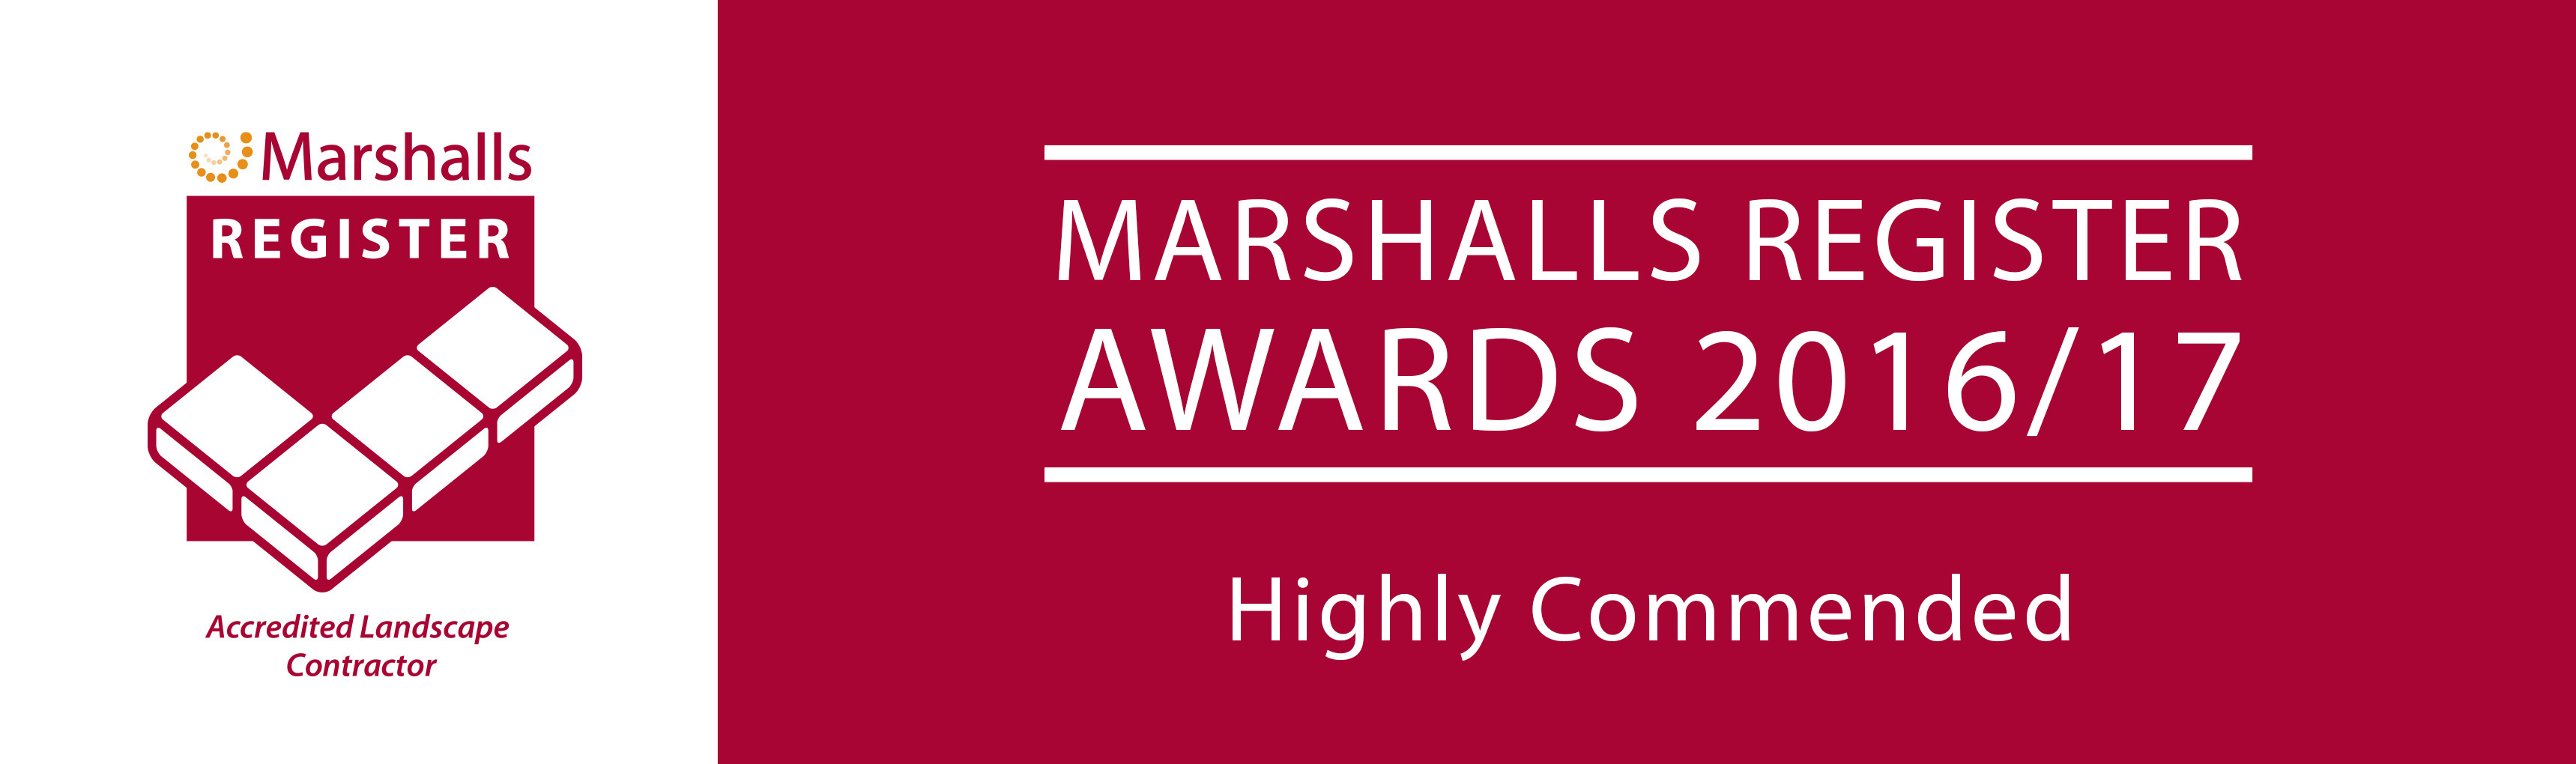 Marshalls Register Awards Highly Commended 2016-17